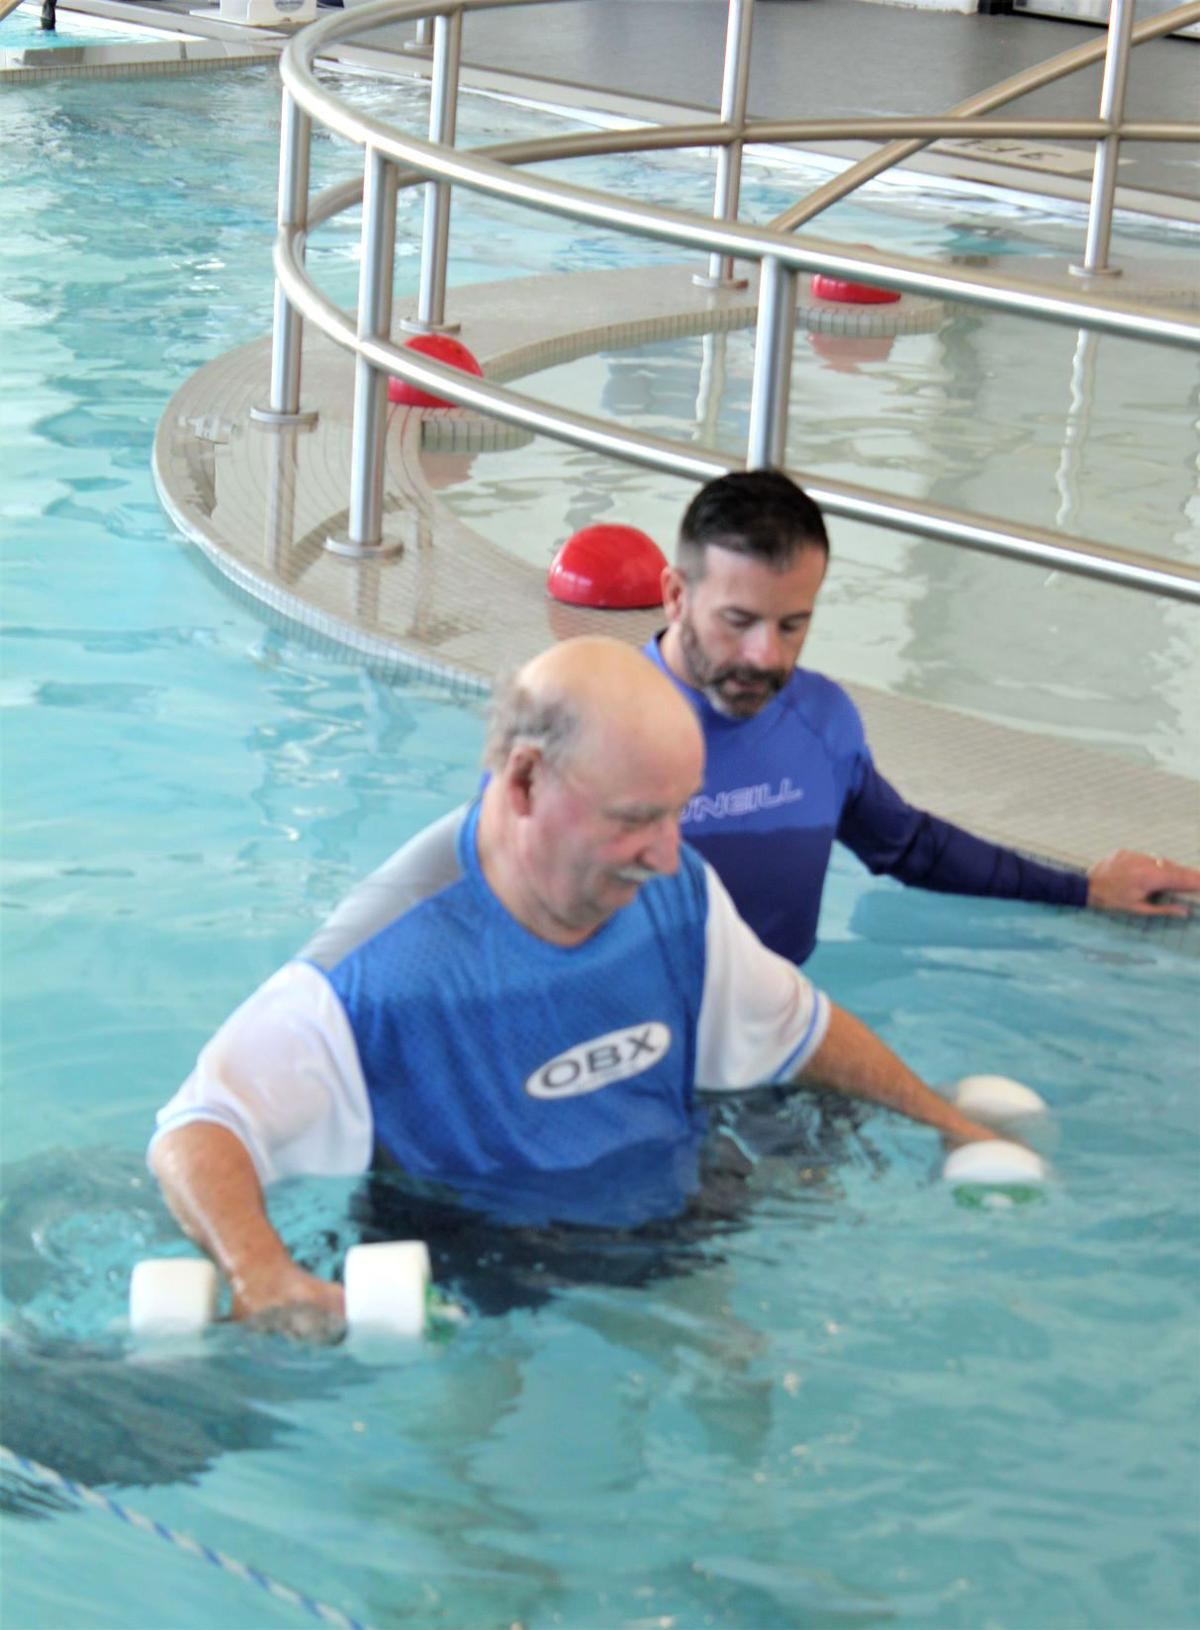 Working with aquatic dumbbells